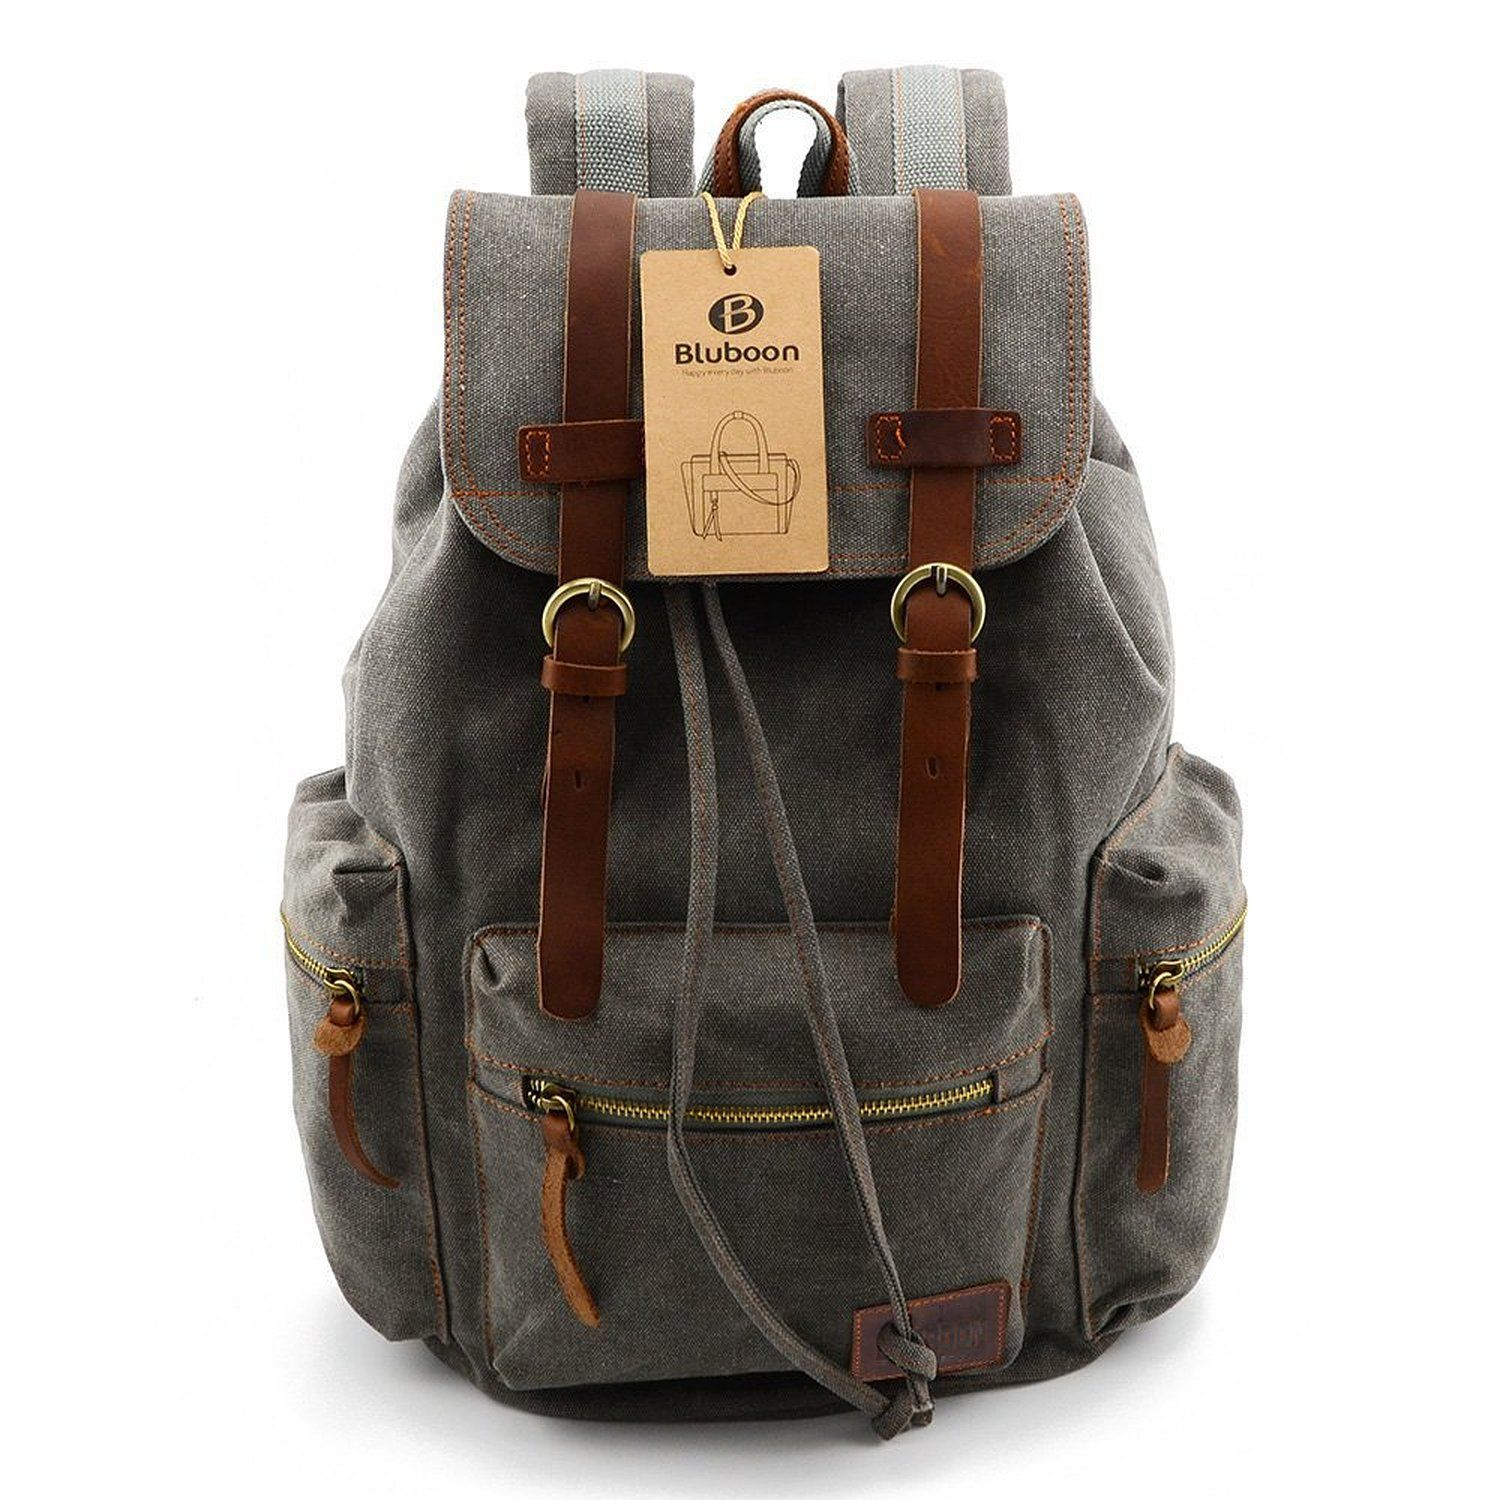 New Men Vintage Canvas Waterproof Backpack Rucksack Travel Bag Satchel Schoolbag